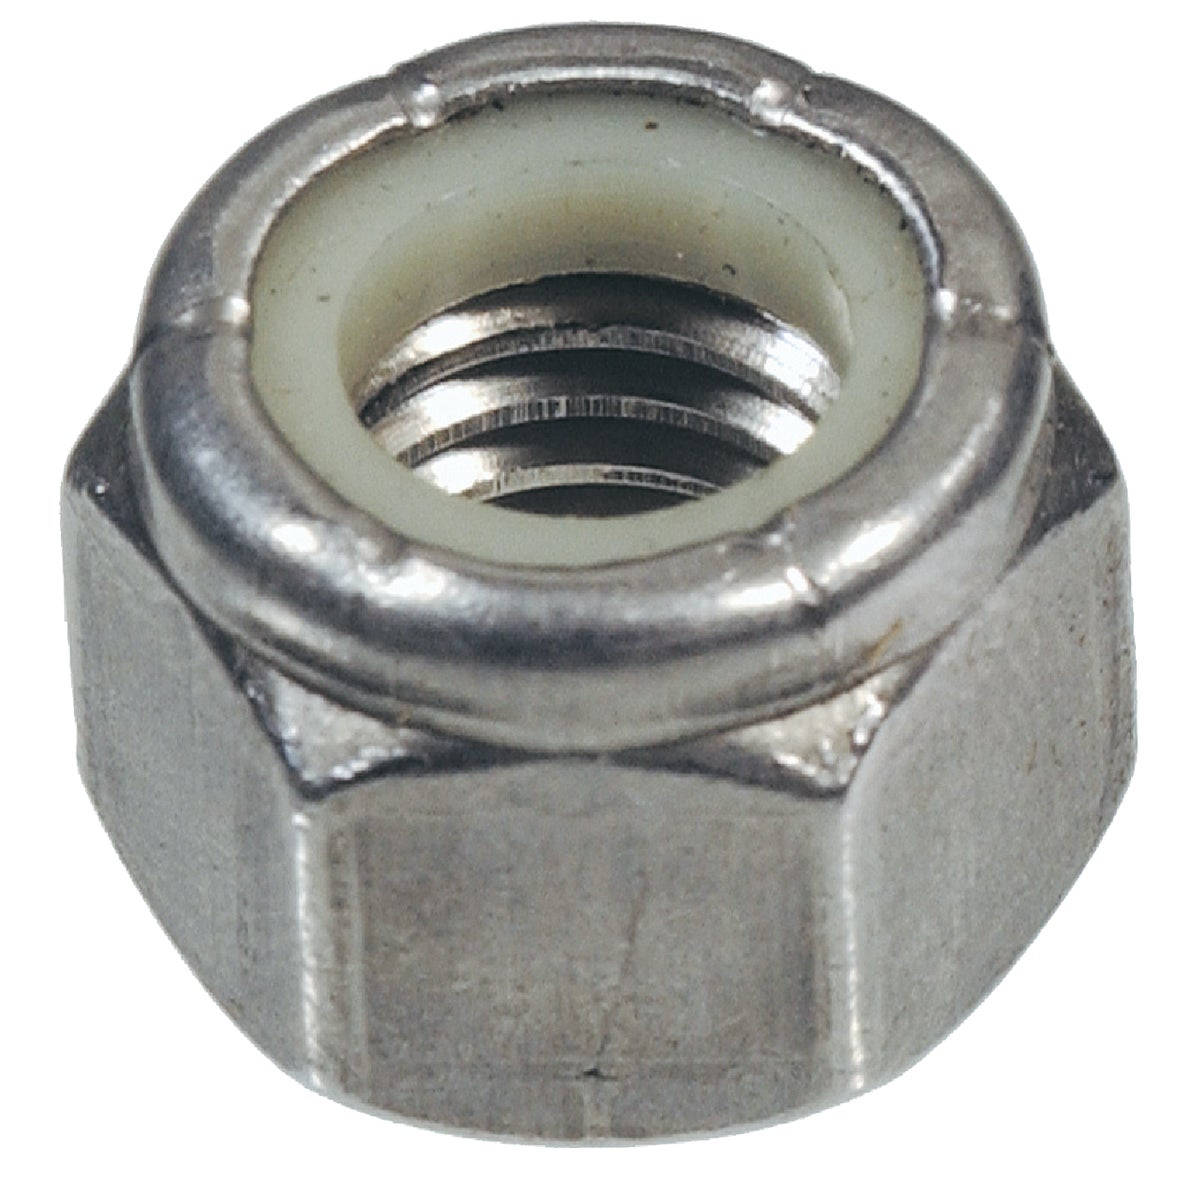 8-32 SS NYLON LOCK NUT - 829712 by Hillman Fastener